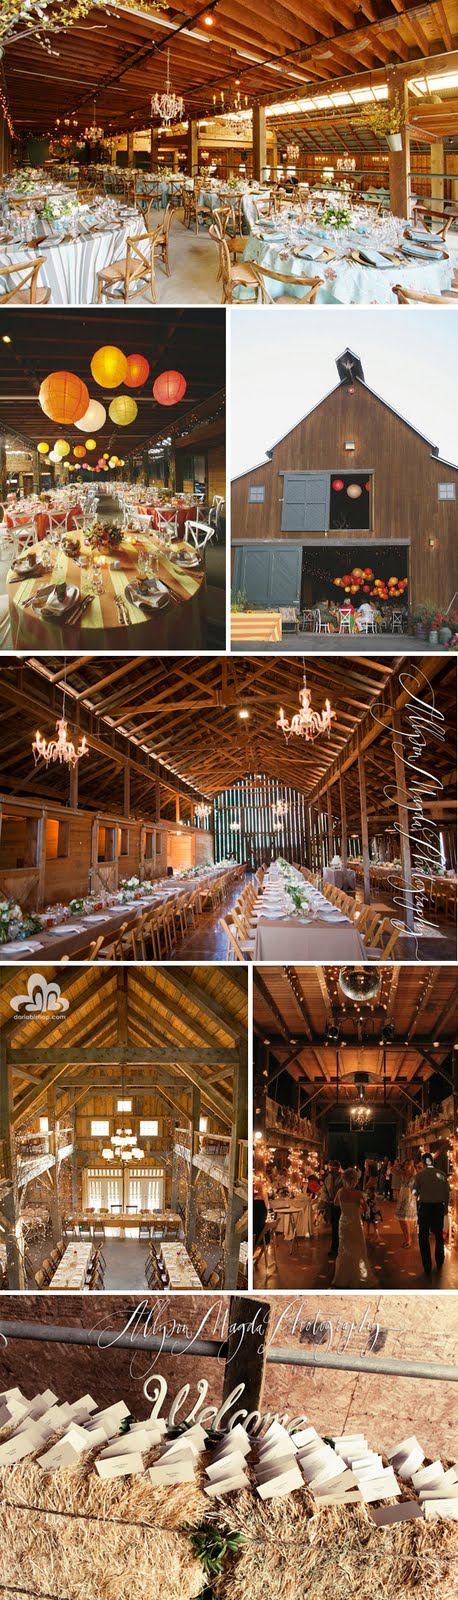 Decorating A Barn For A Wedding